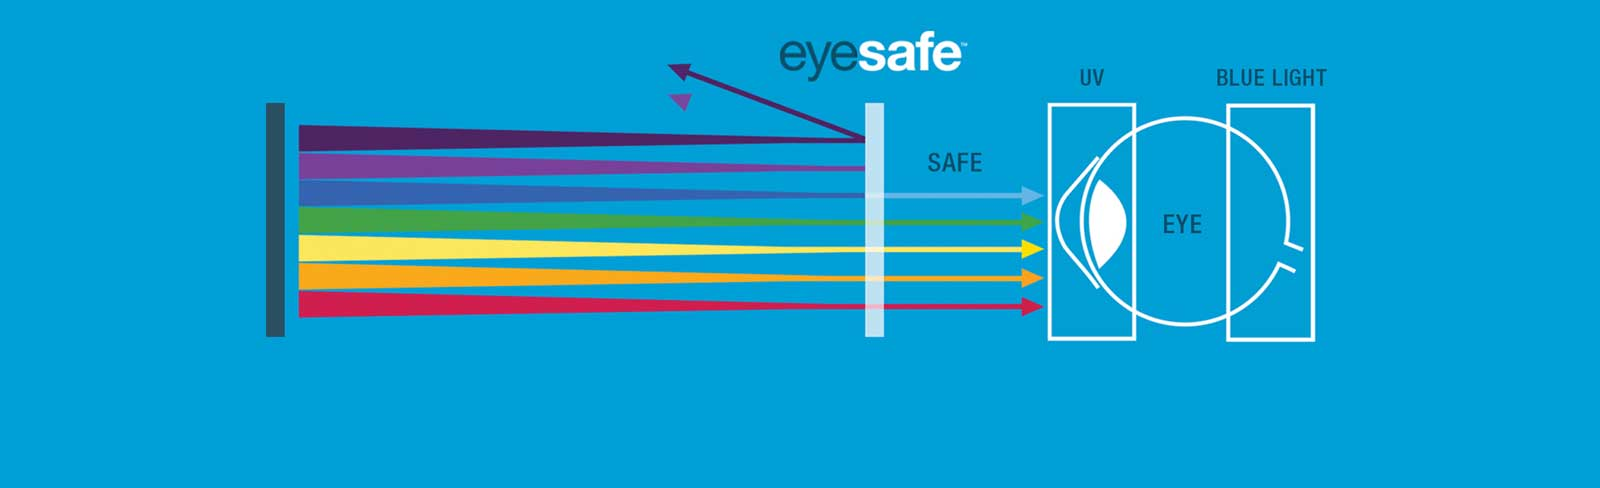 Eyesafe Technology